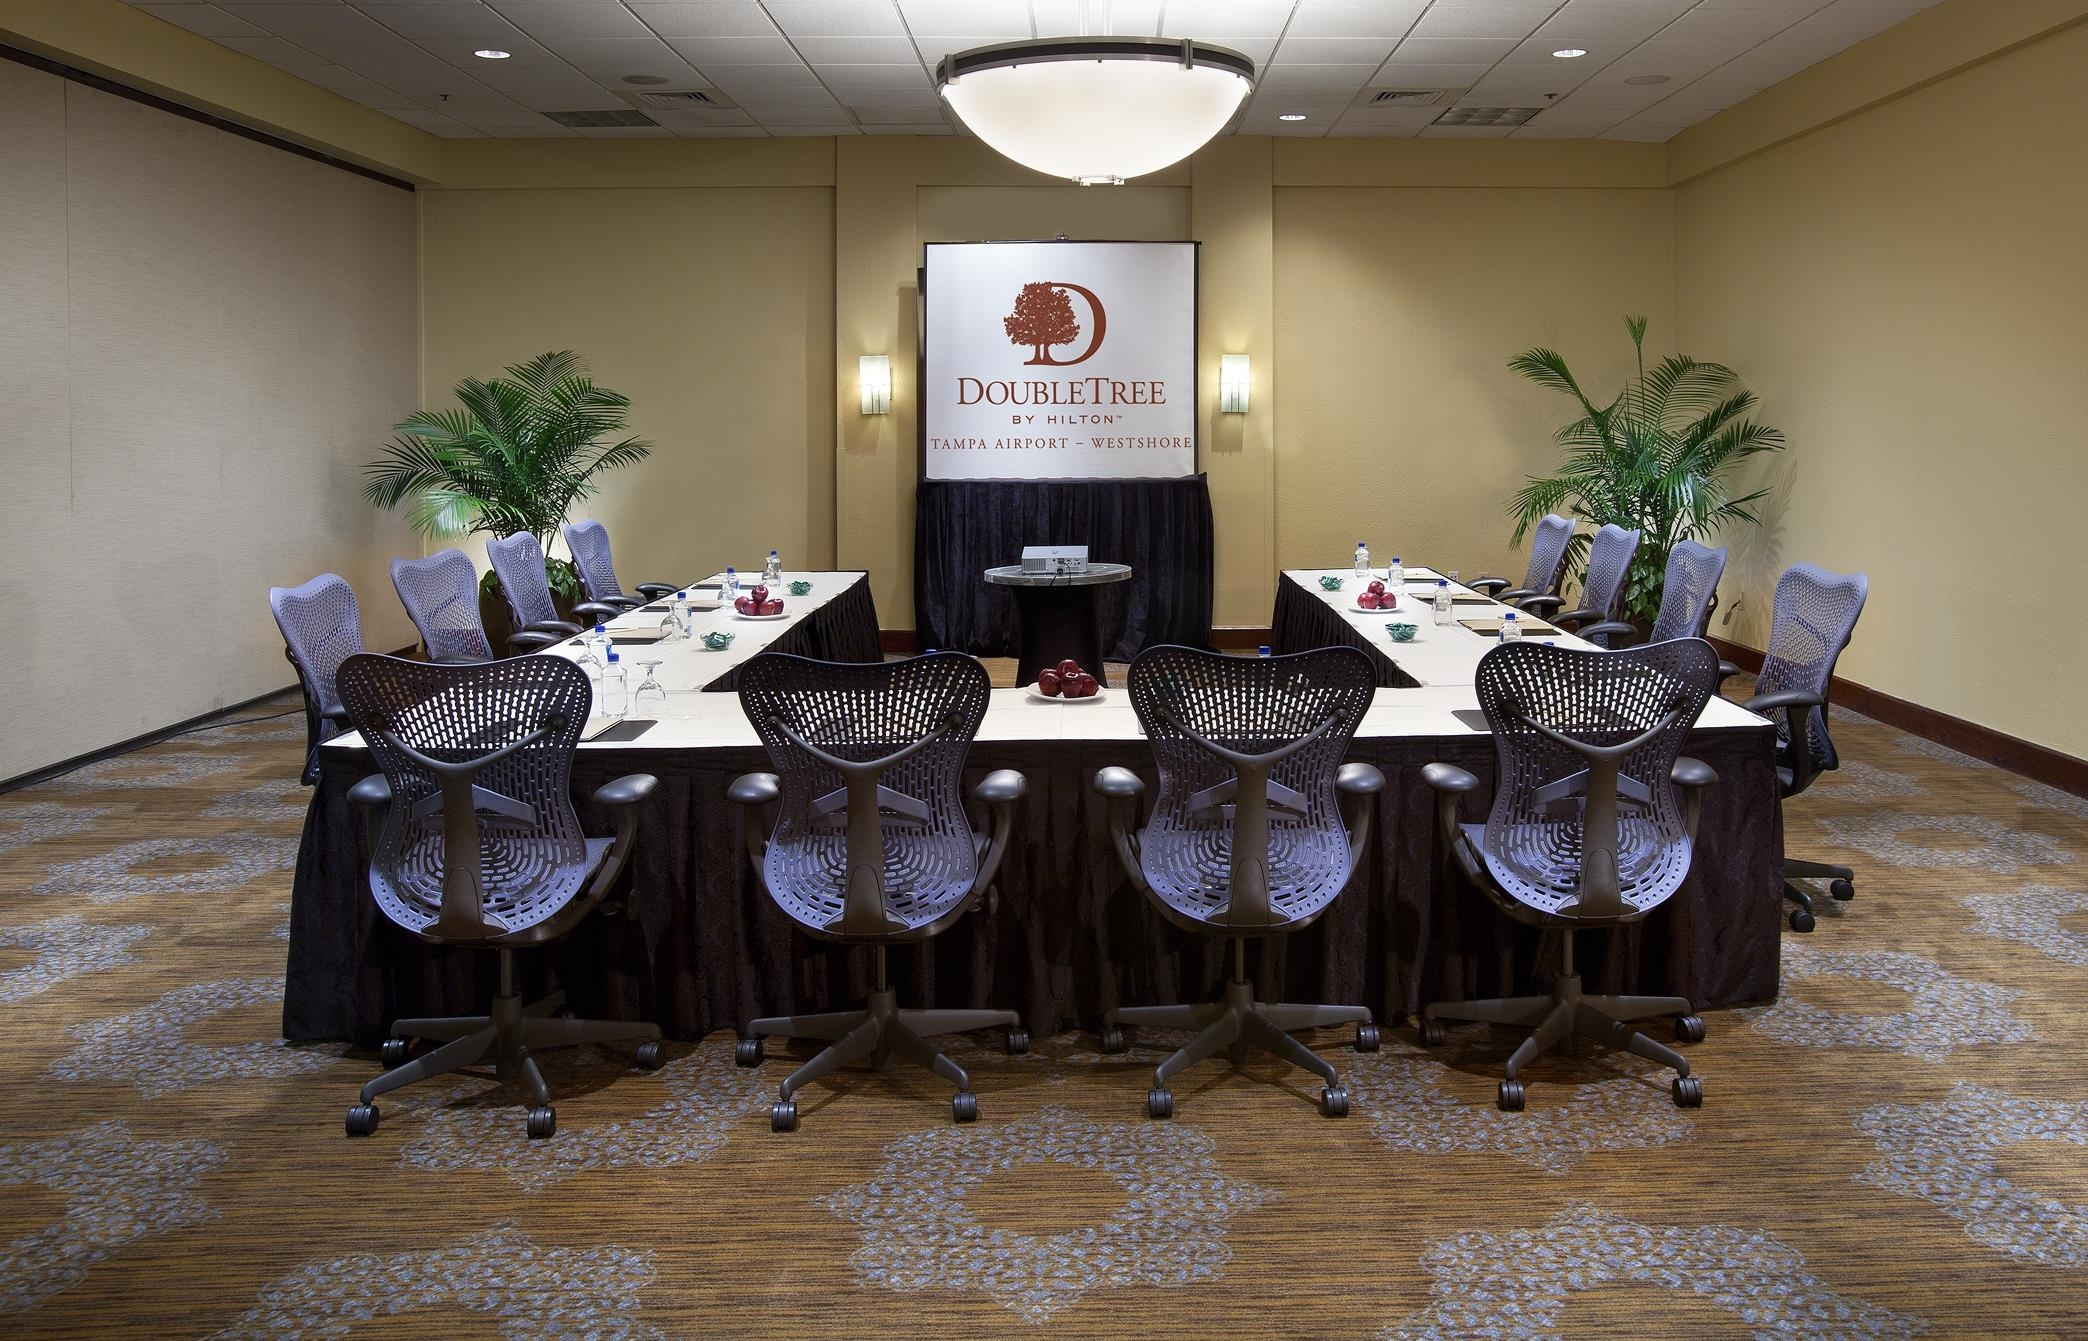 DoubleTree by Hilton Hotel Tampa Airport - Westshore image 6